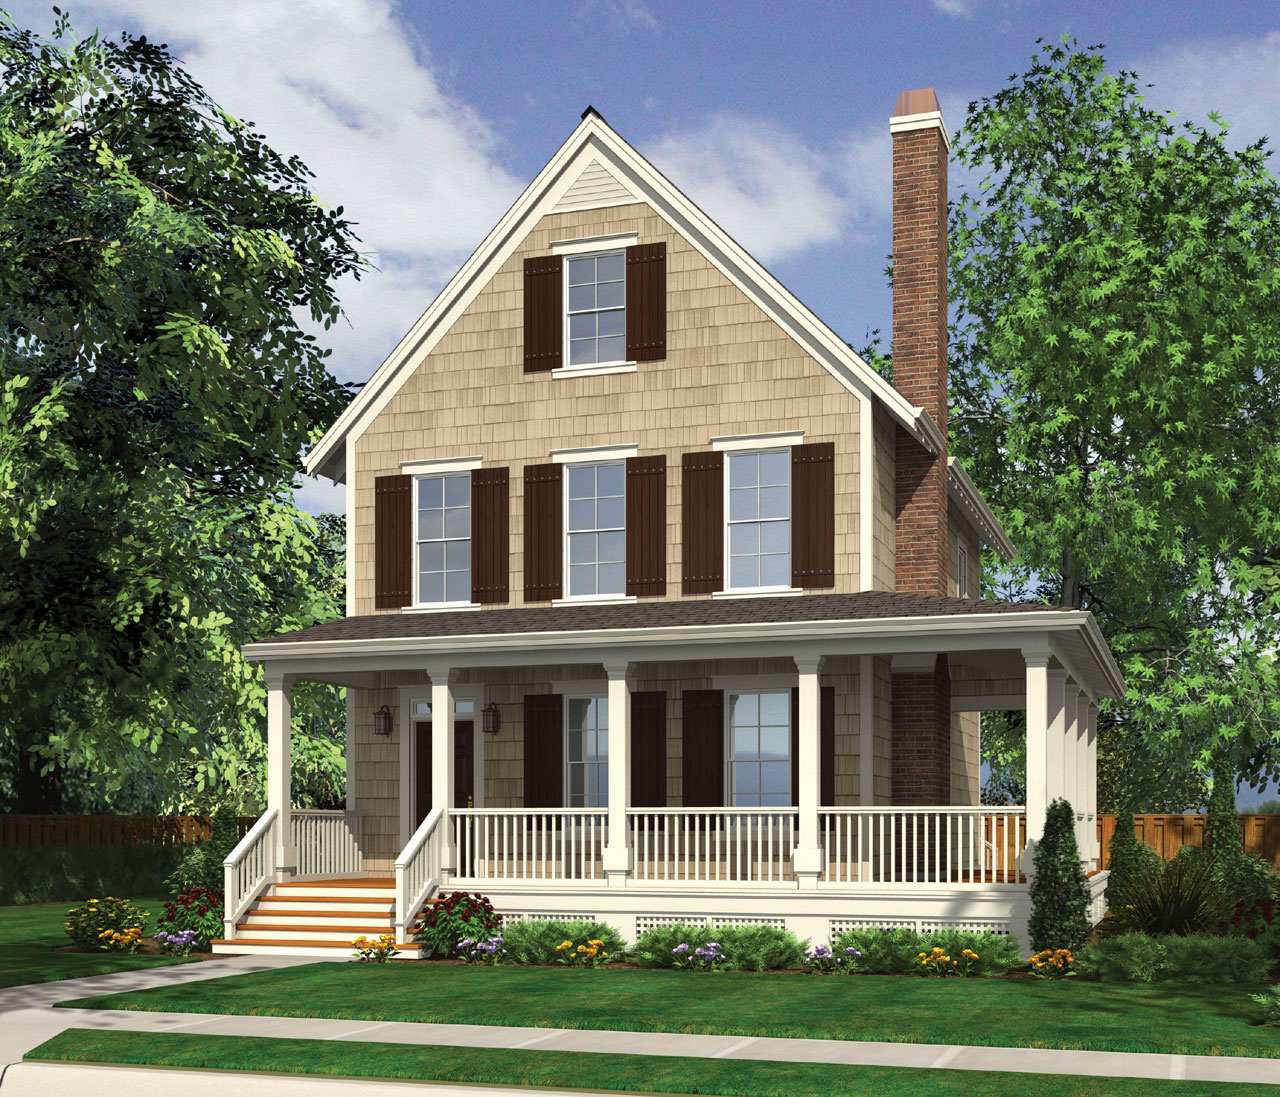 Colonial Style House Plans Plan: 74-663